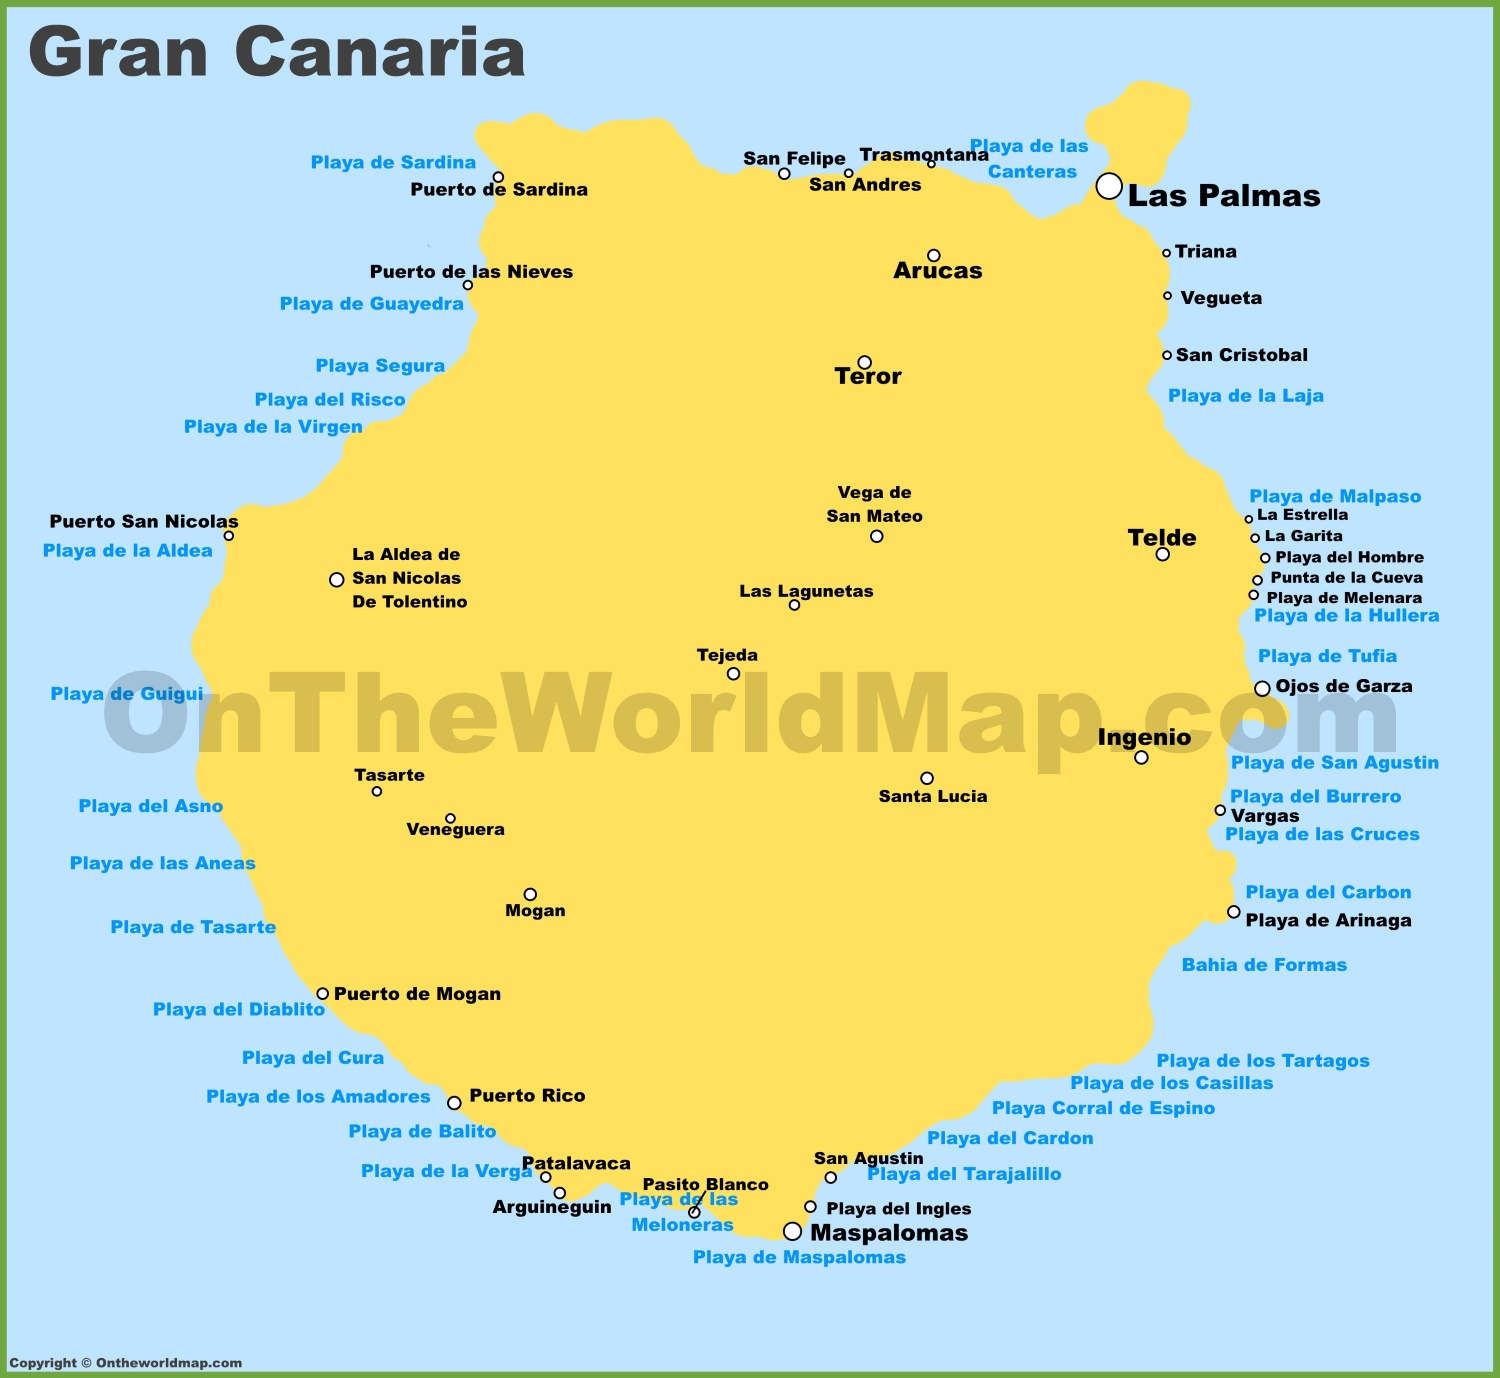 Canary Islands Population